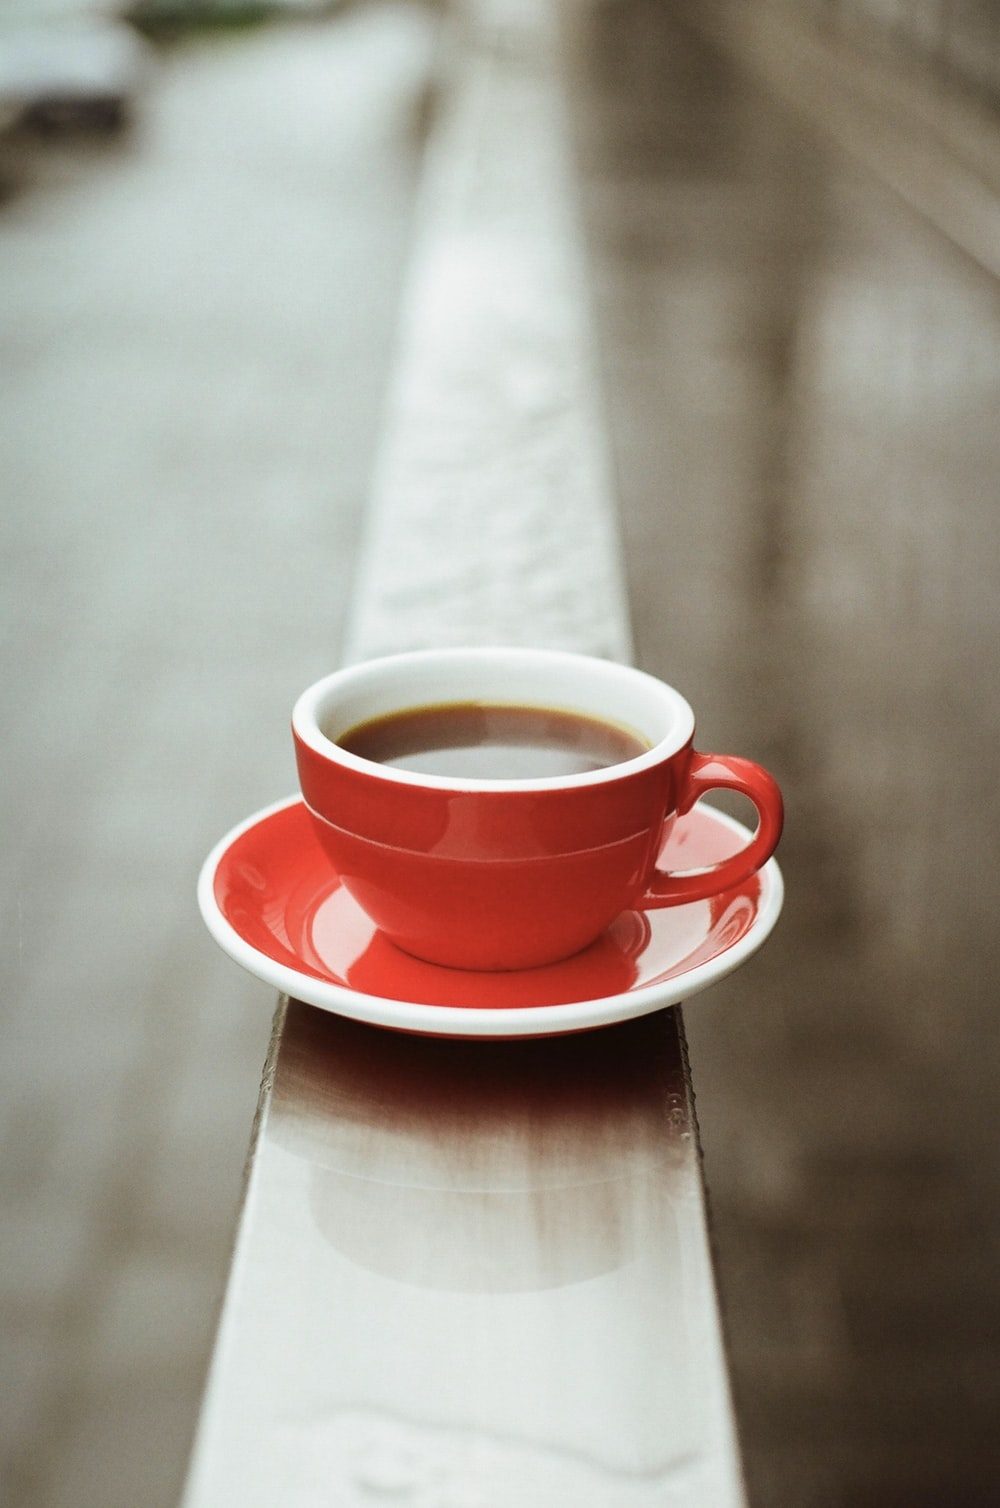 red ceramic teacup on red saucer on brown wooden table